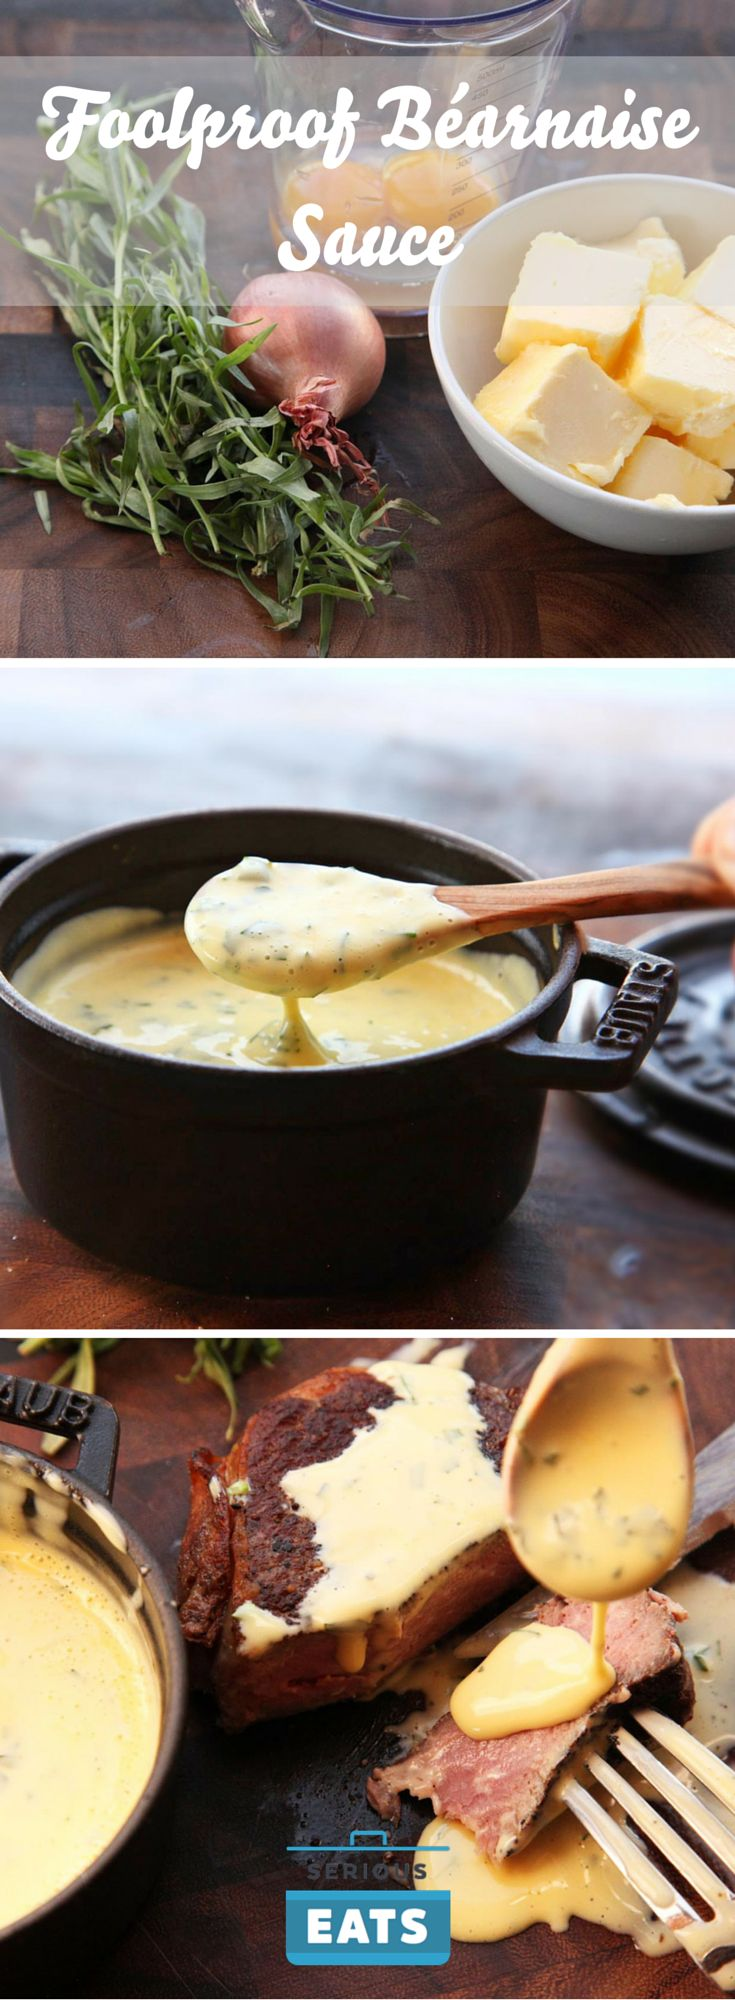 Rich, buttery, tarragon-flavored Béarnaise is the easiest elegant steak sauce to make at home.